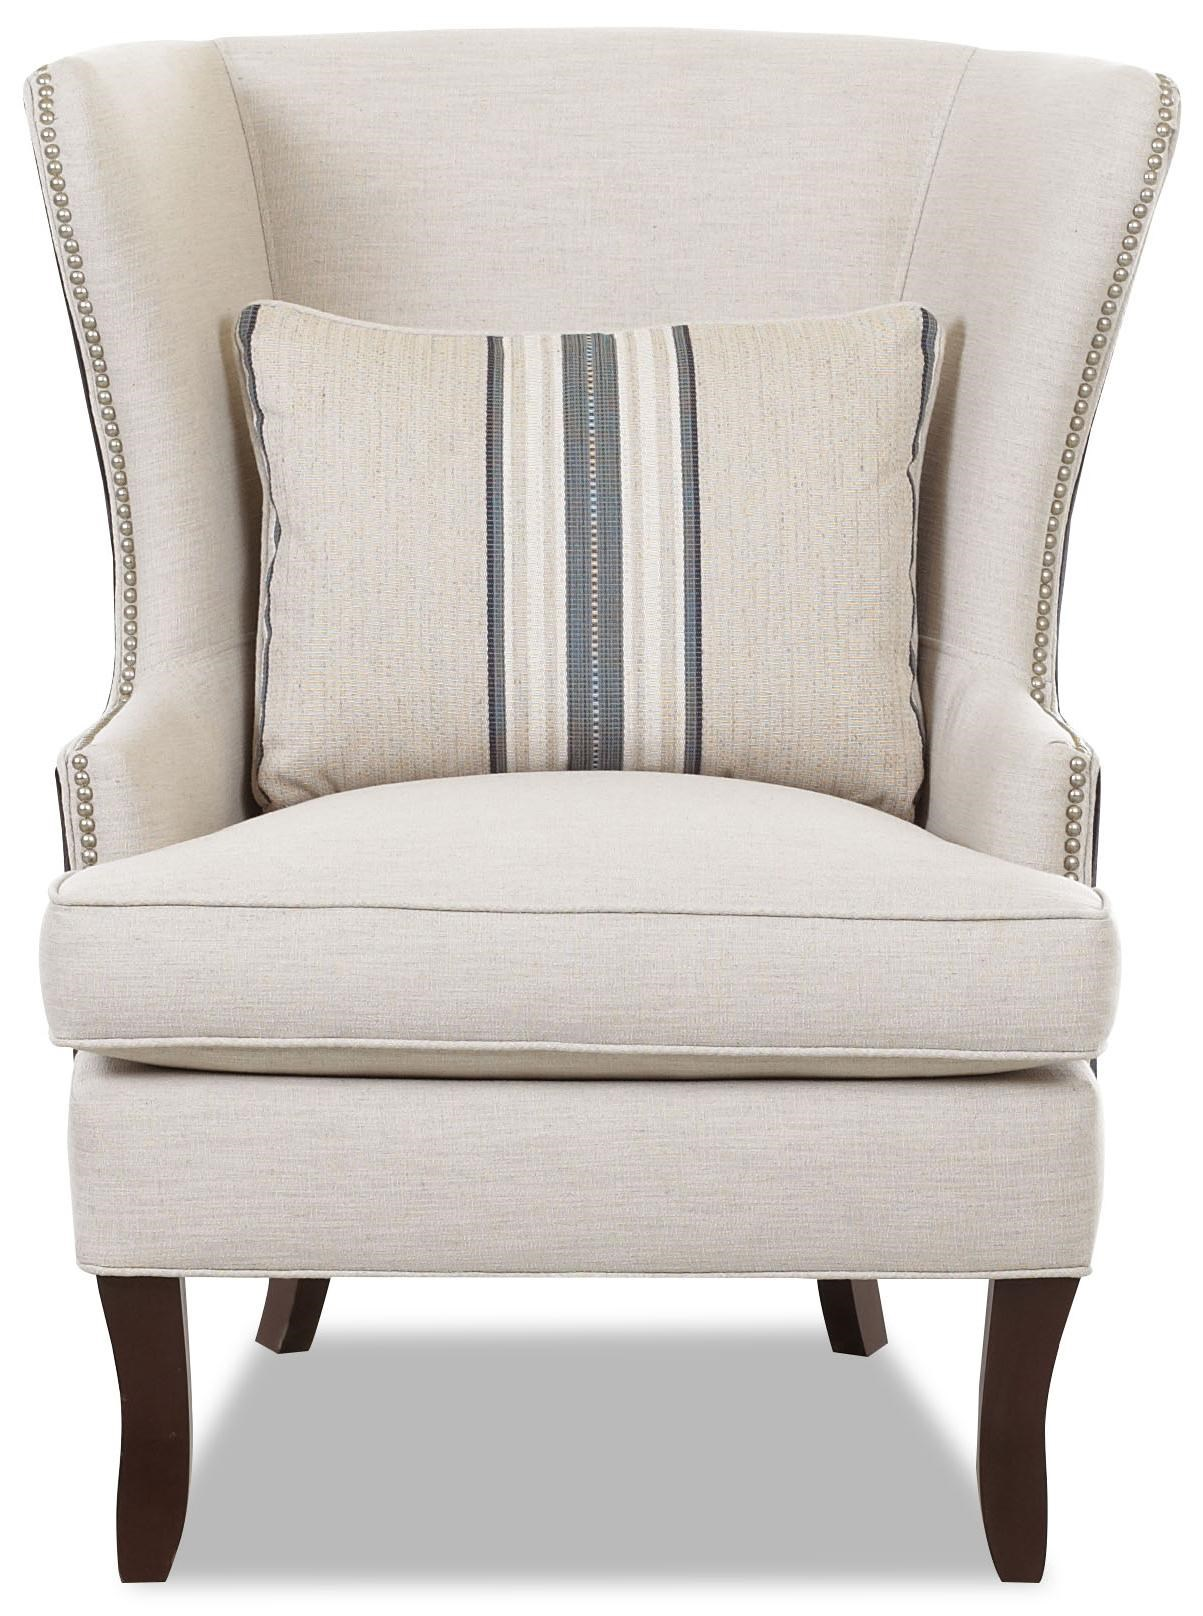 Coral Colored Accent Chair